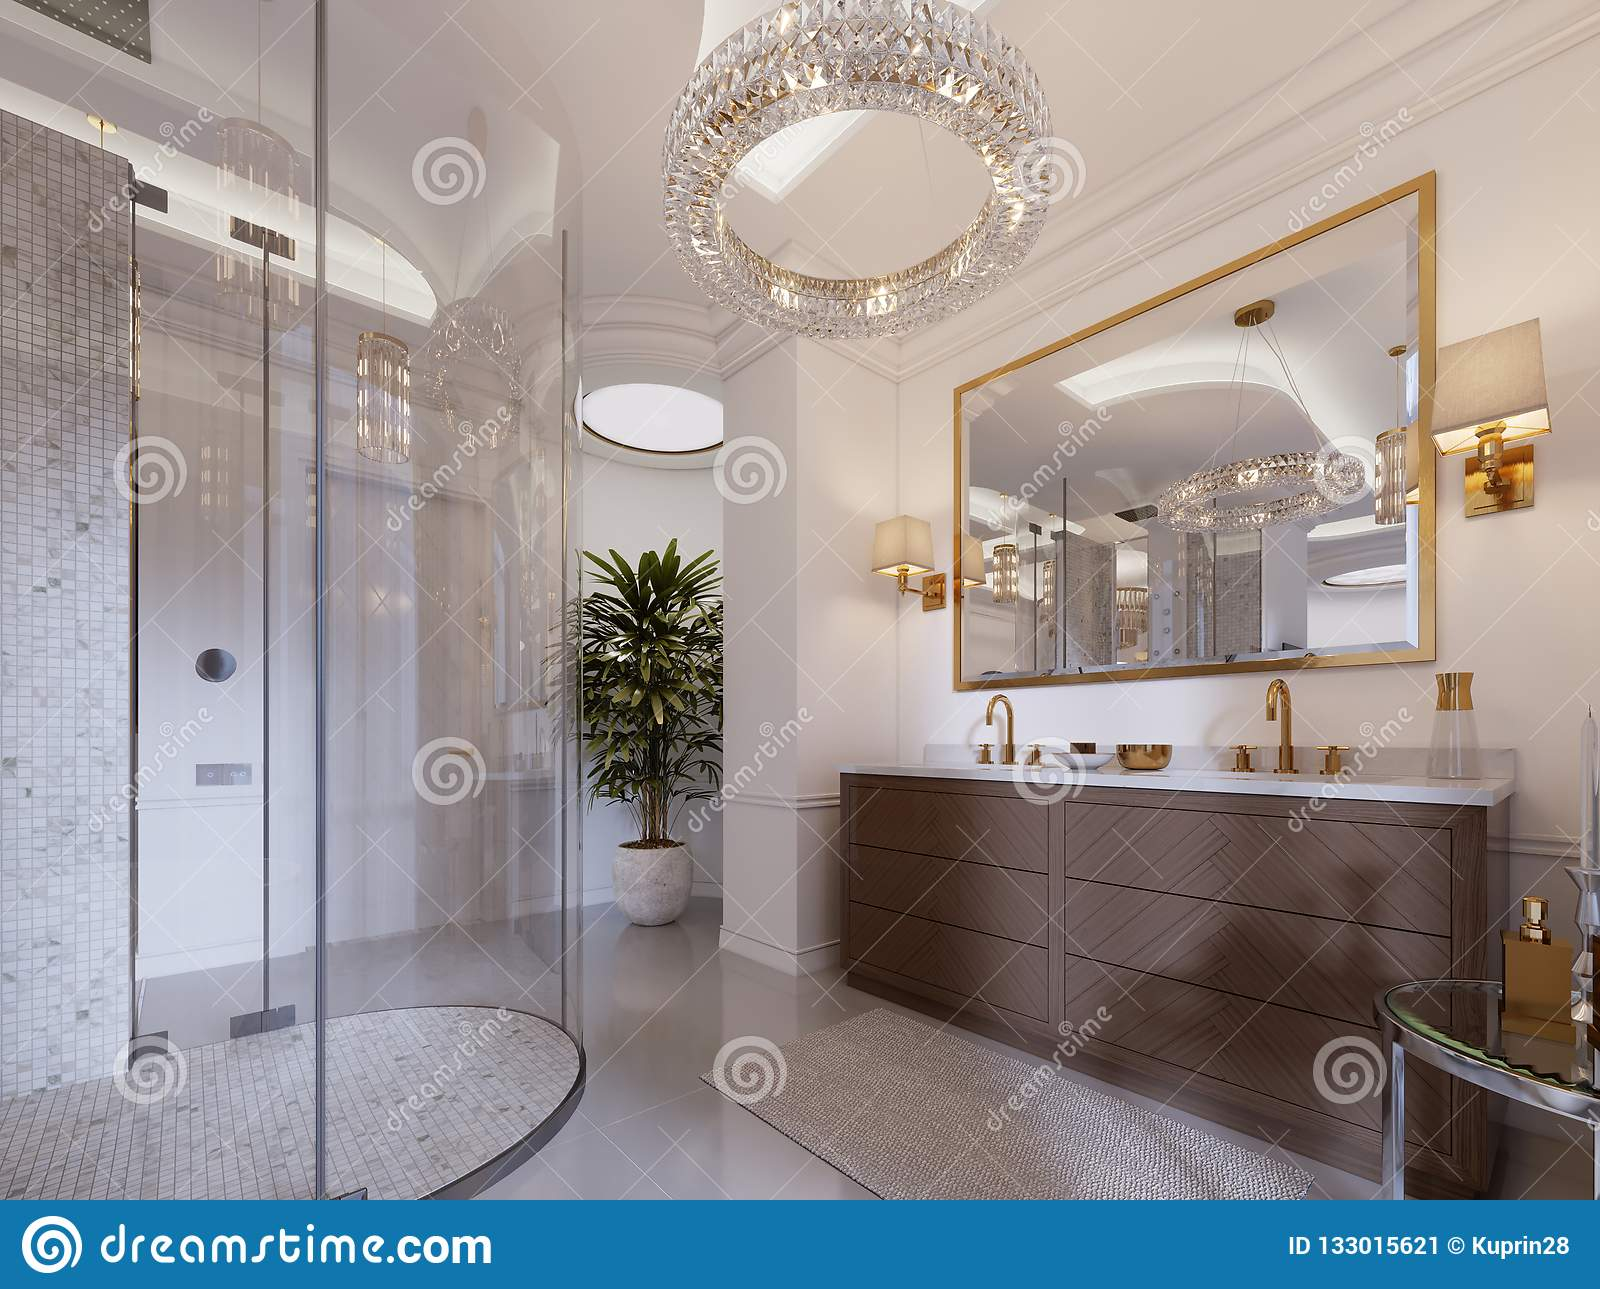 https www dreamstime com modern bathroom vanity mirror gold frame sconces wall low table decor shower fashionable image133015621